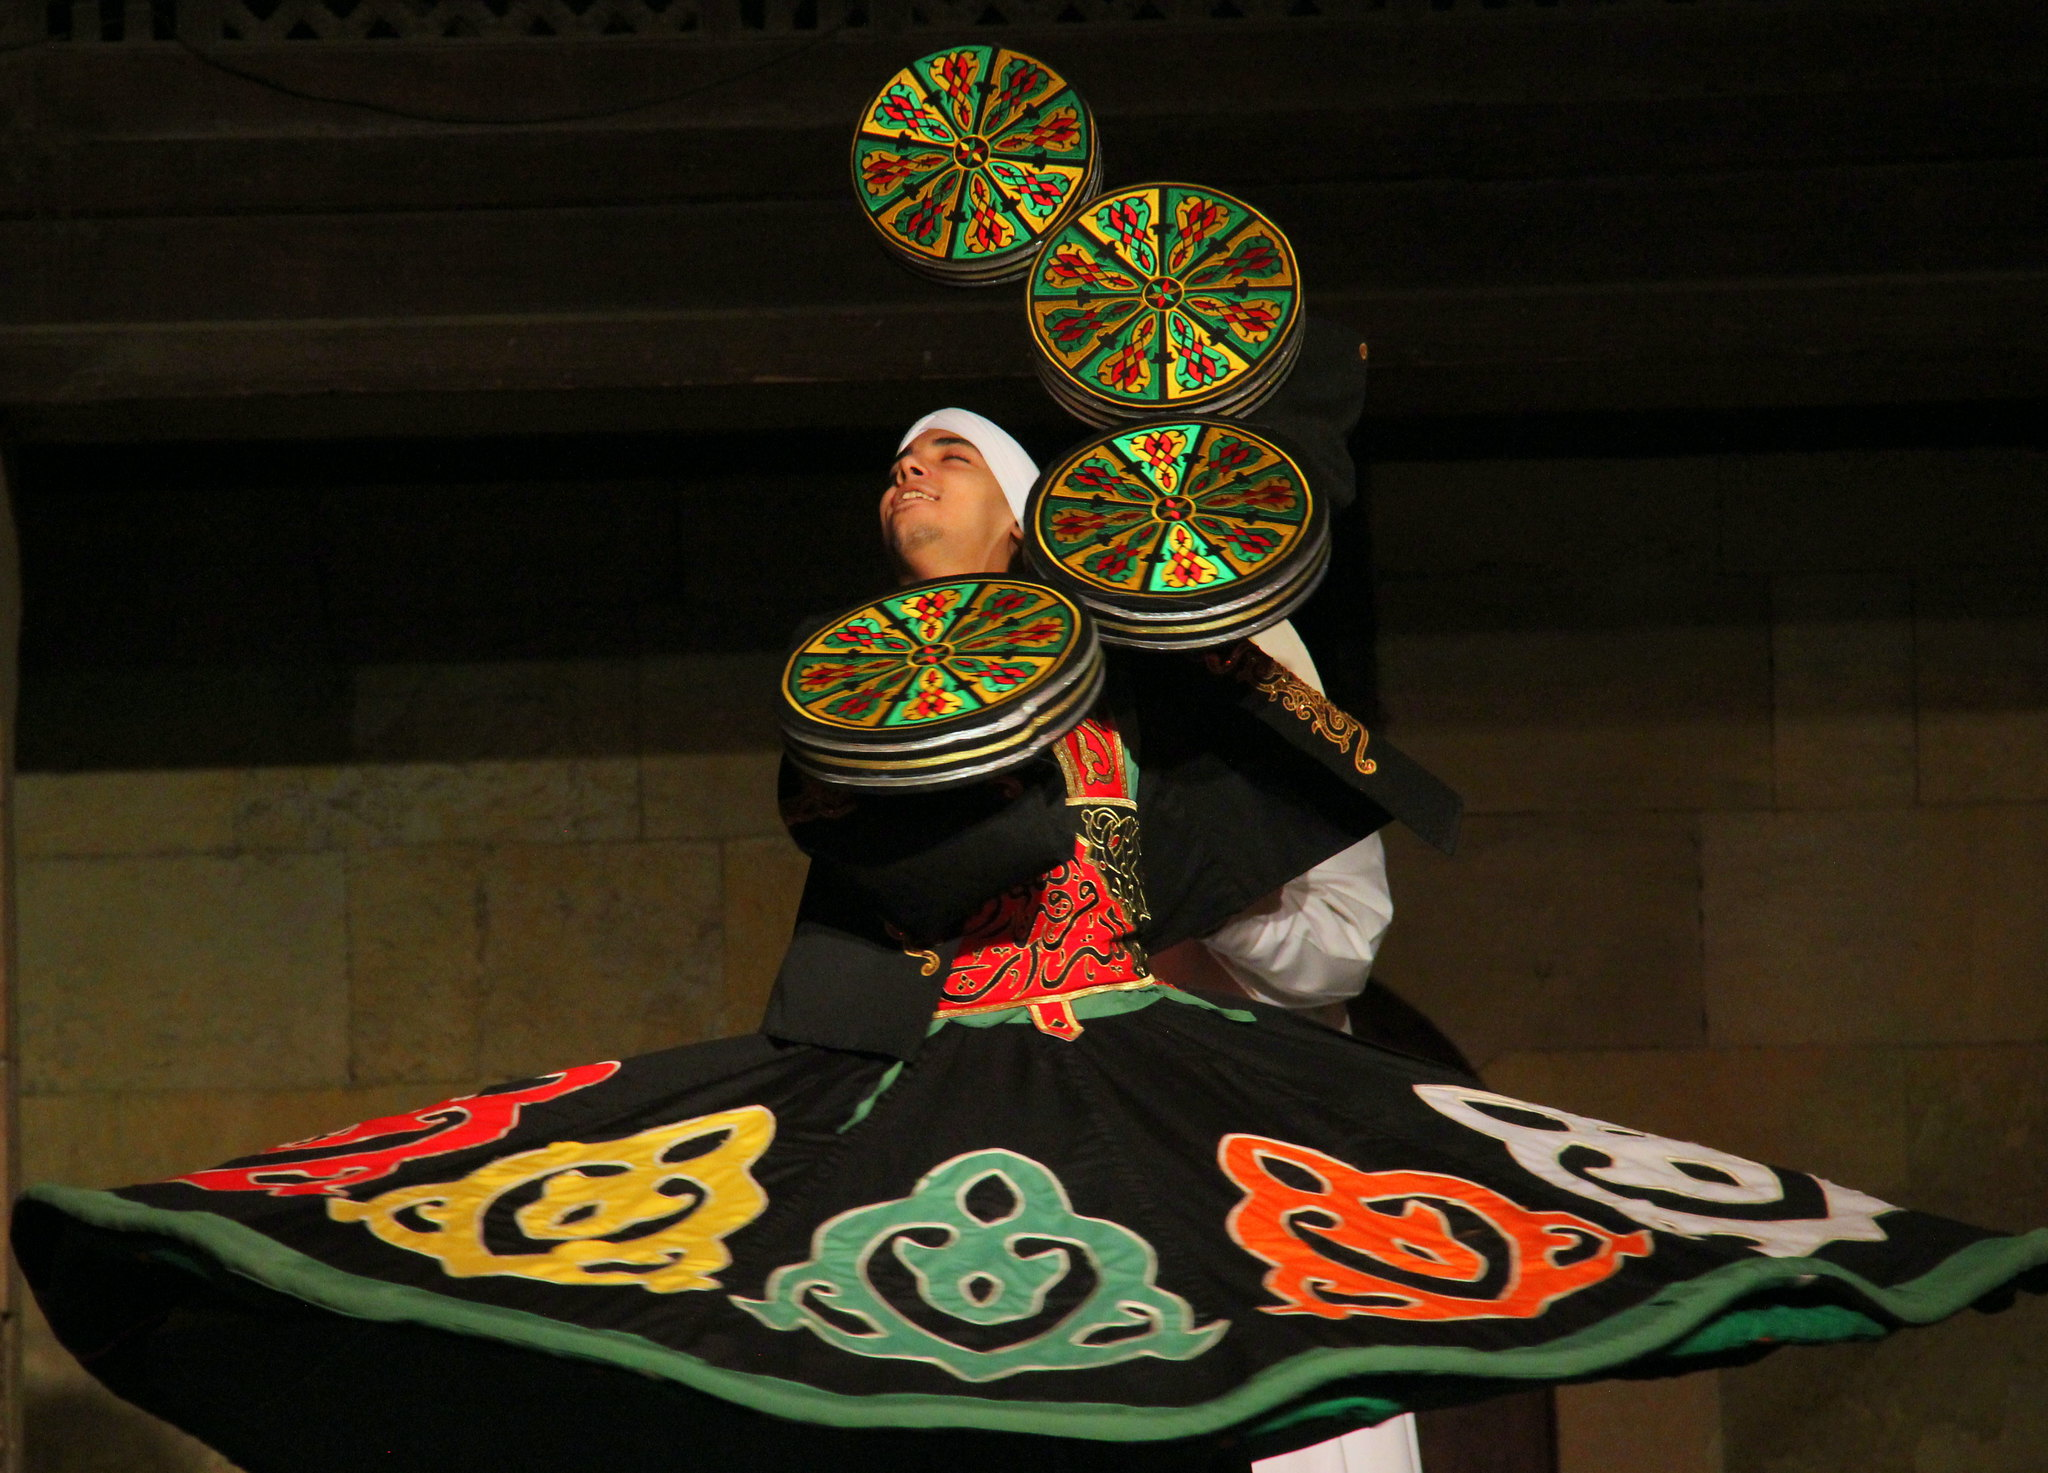 The finale of Tanoura is mesmerizing